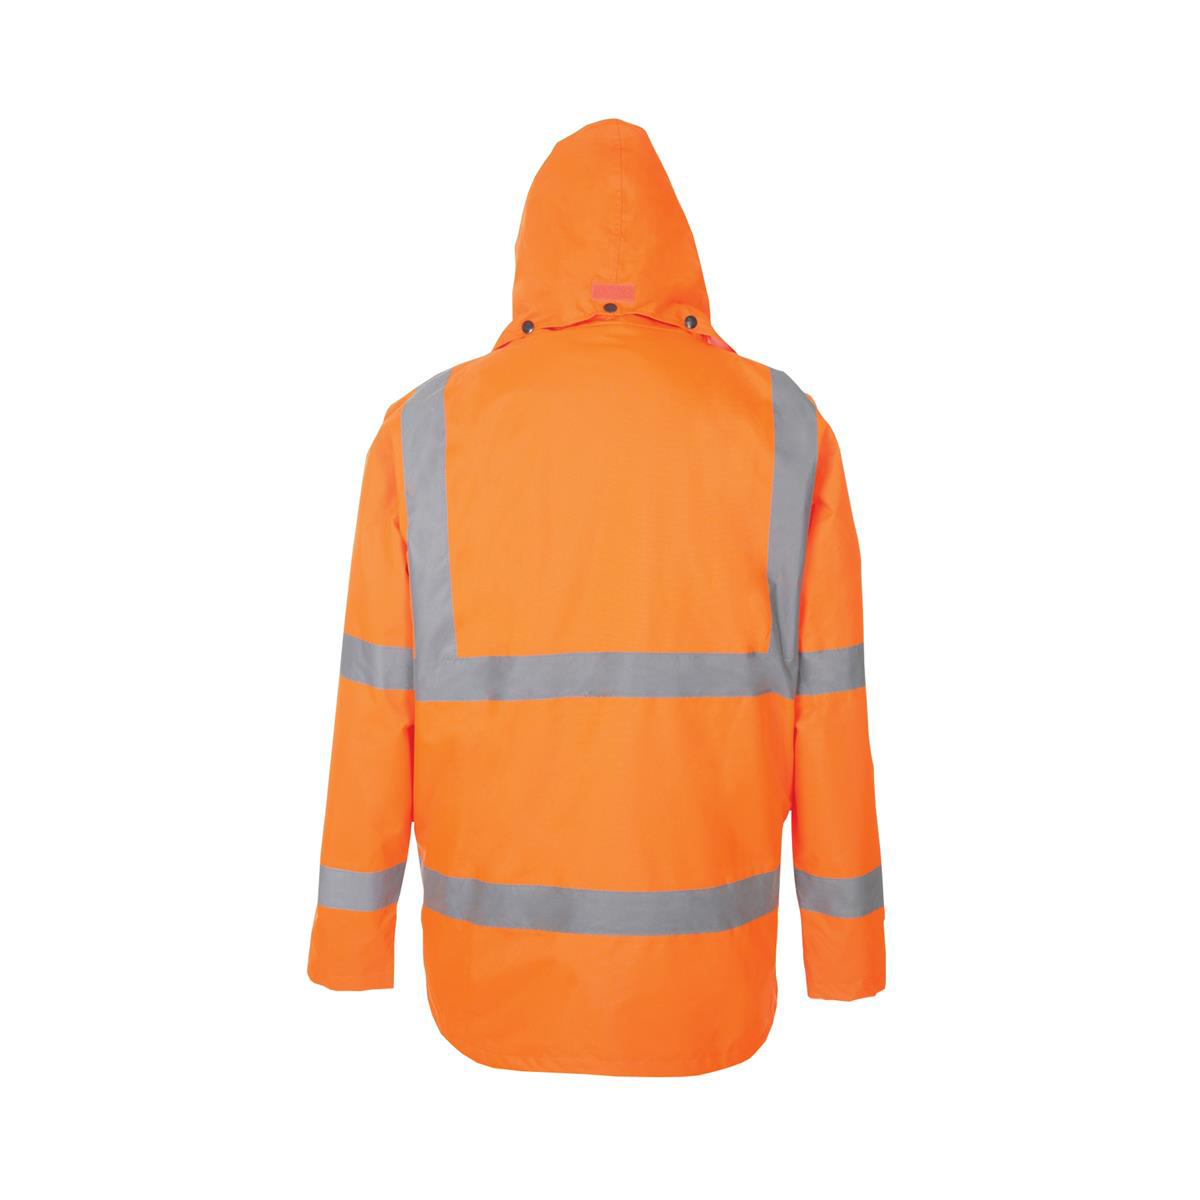 High Visibility Breathable Jacket Multifunctional 3XL Orange Ref JJOR3XL Approx 2/3 Day Leadtime